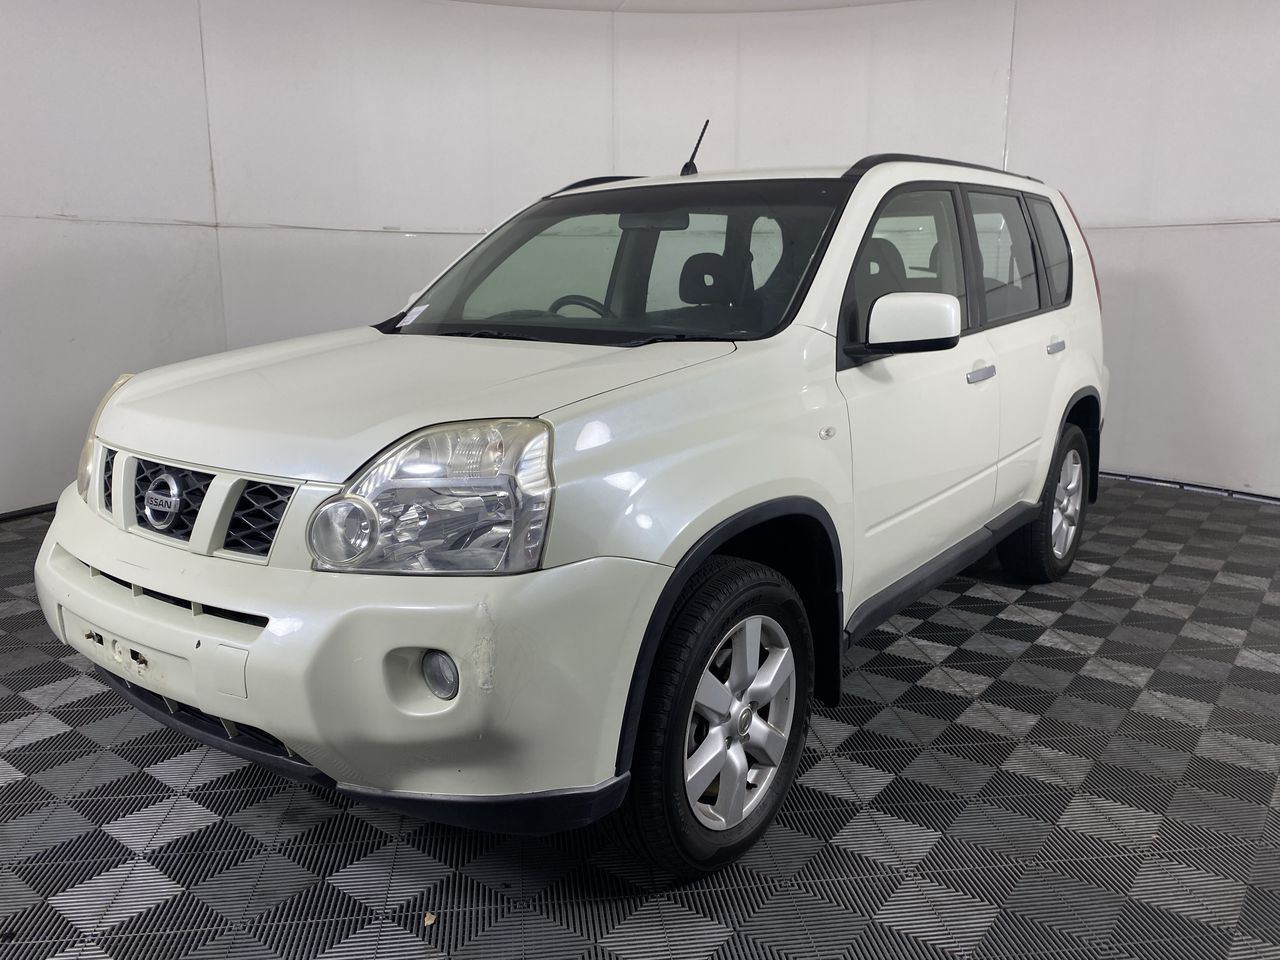 2008 Nissan X-Trail TS (4x4) T31 Turbo Diesel Automatic Wagon